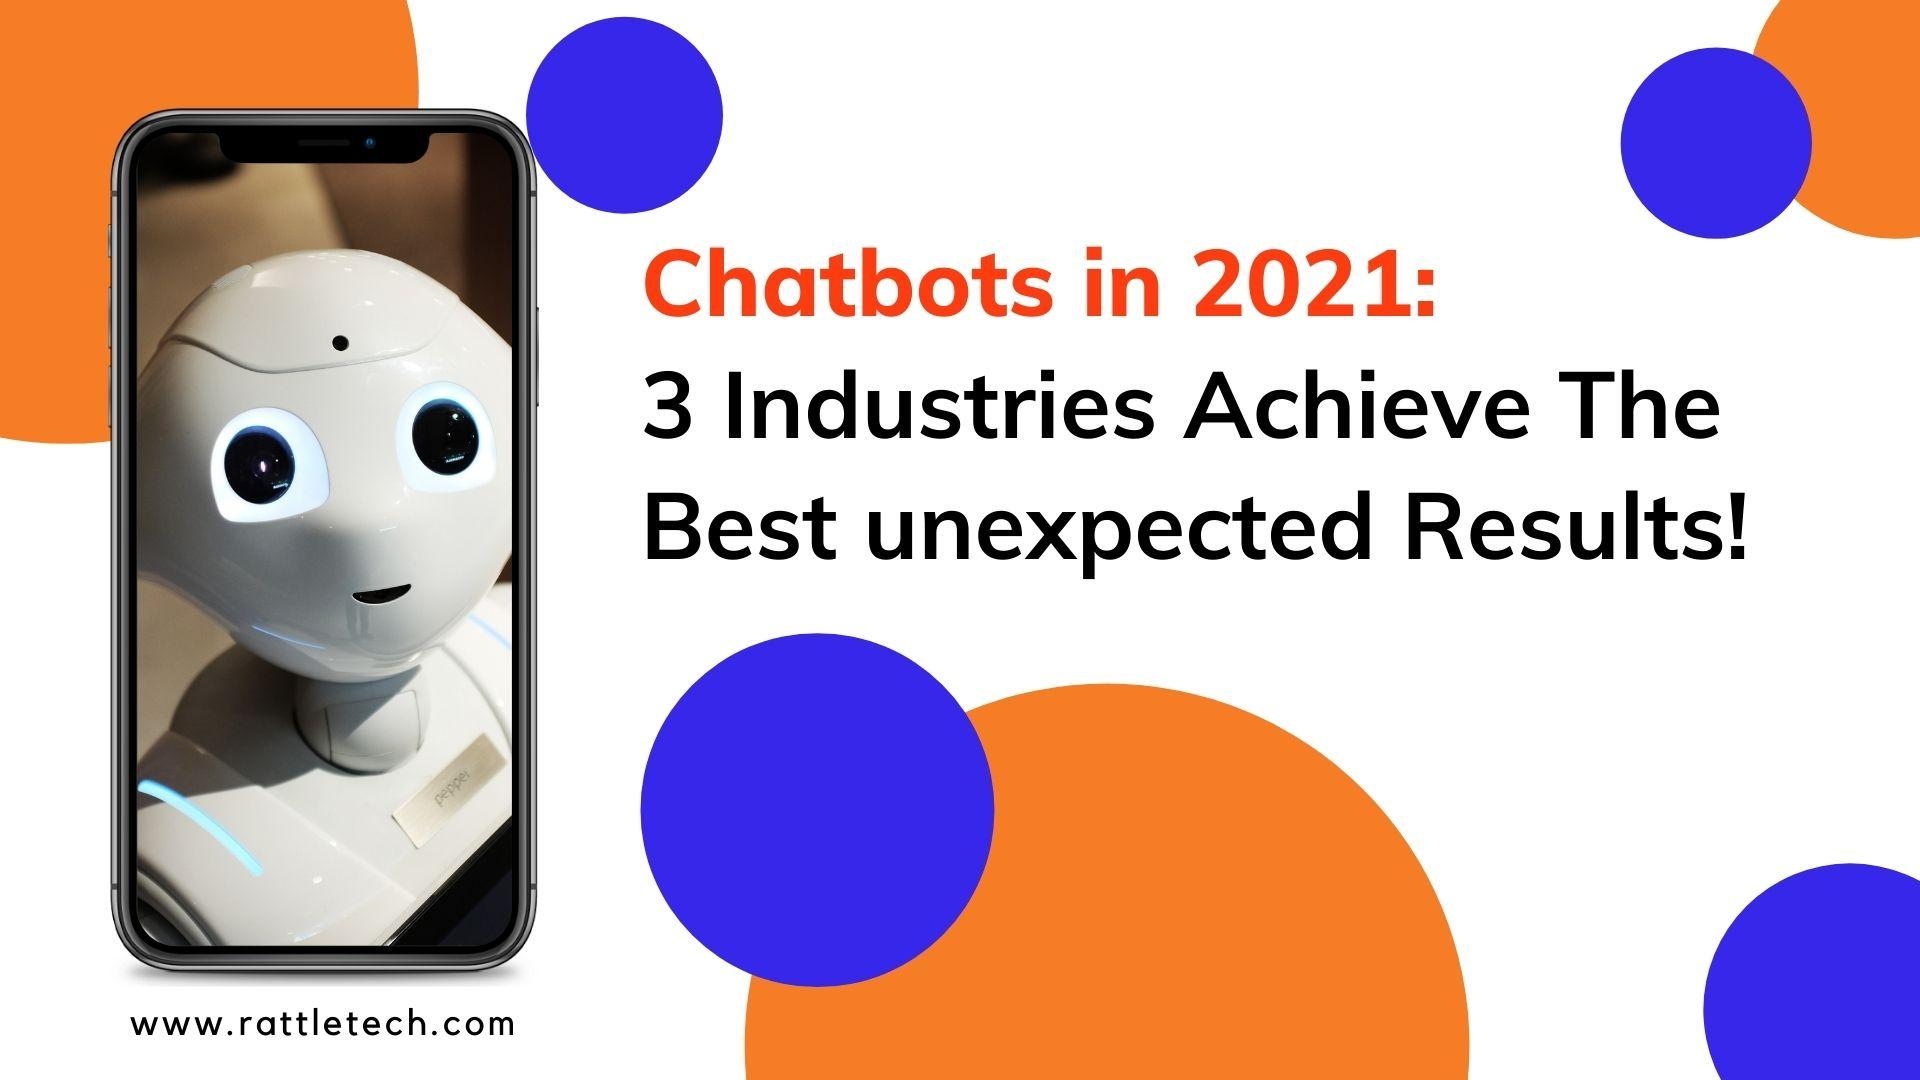 Chatbots in 2021_ 3 Industries Achieve The Best unexpected Results!